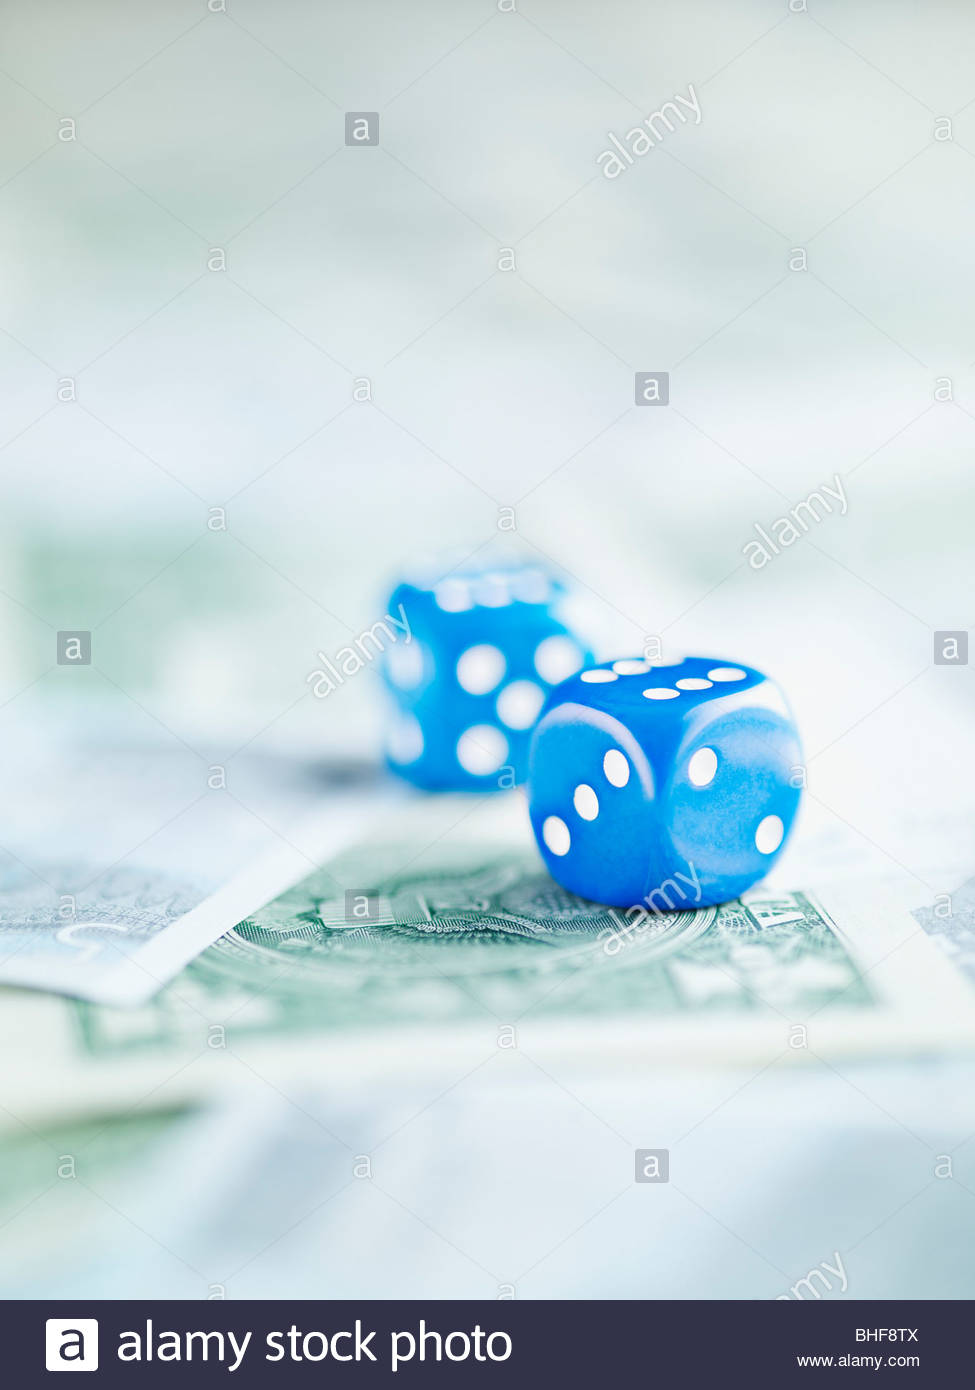 Blue dice on pile of dollar bills - Stock Image